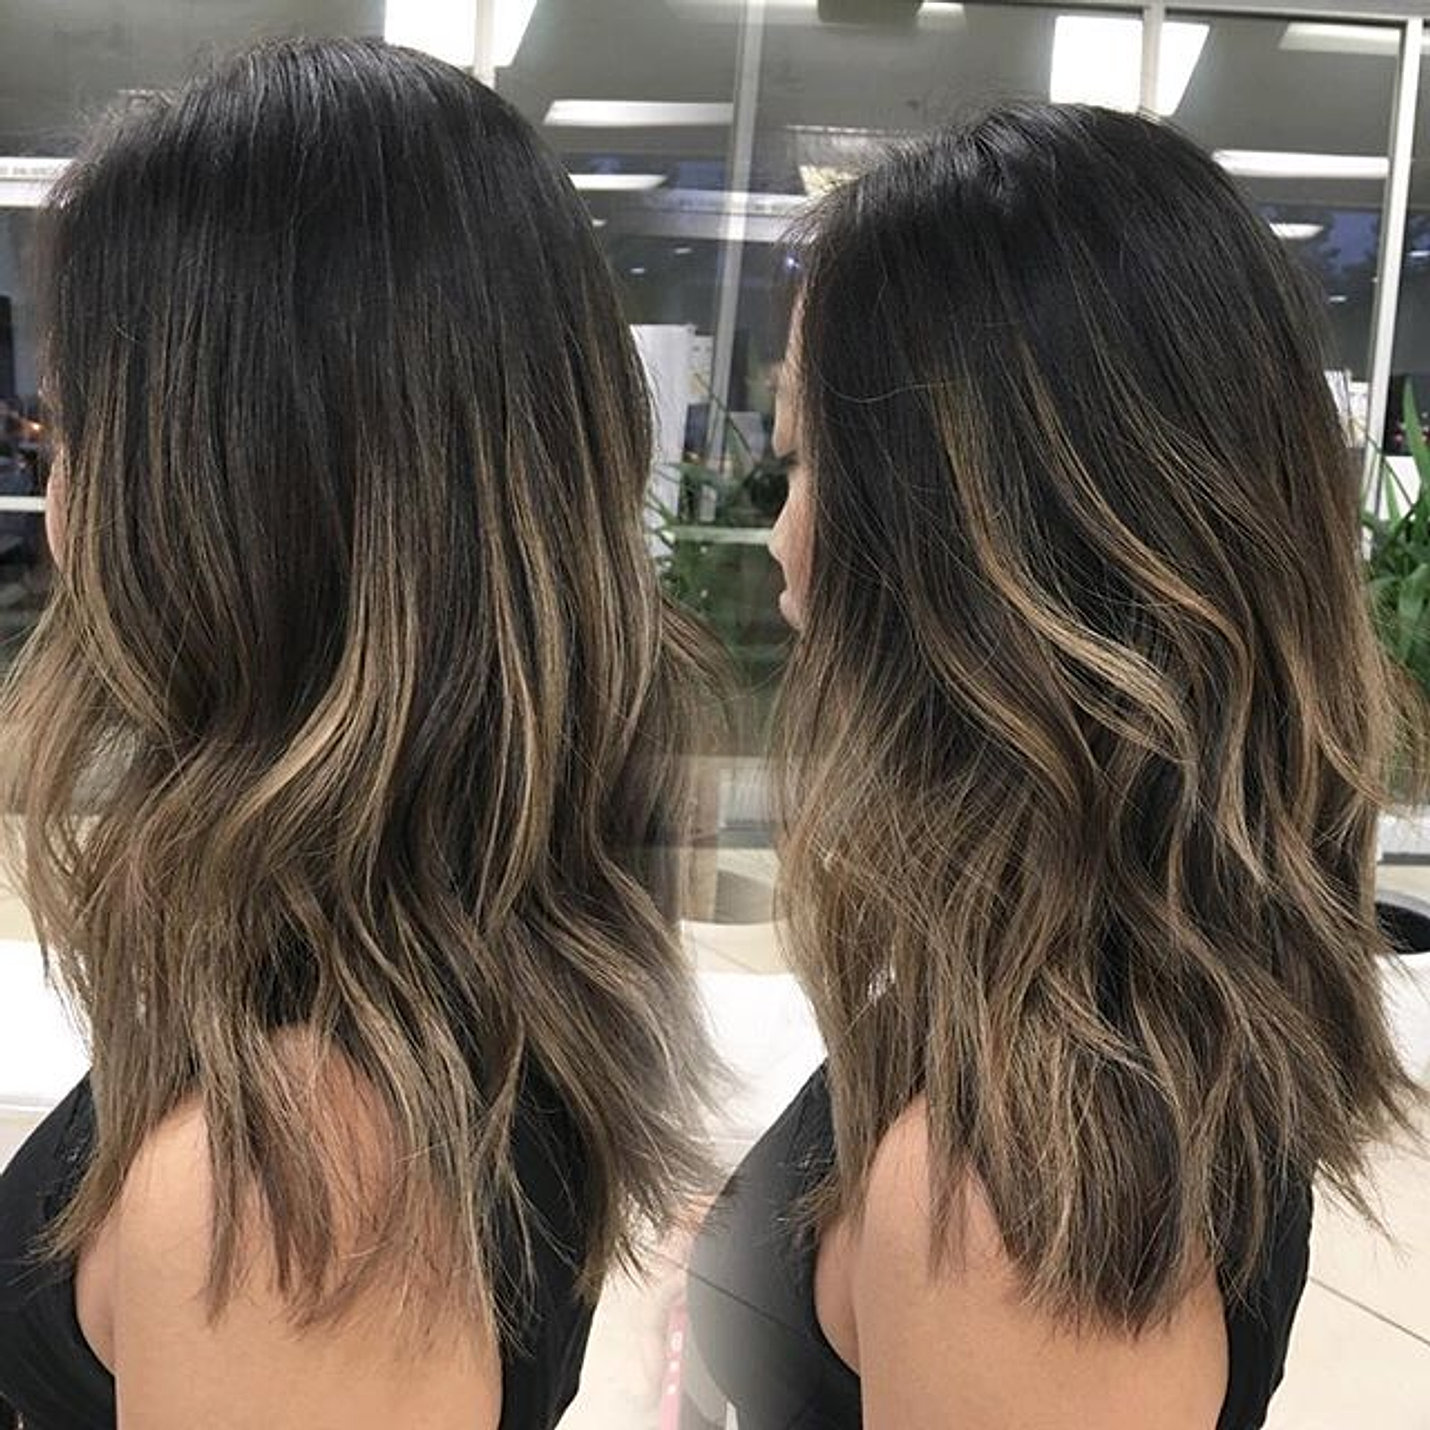 Babylights to brighten up her old balayage